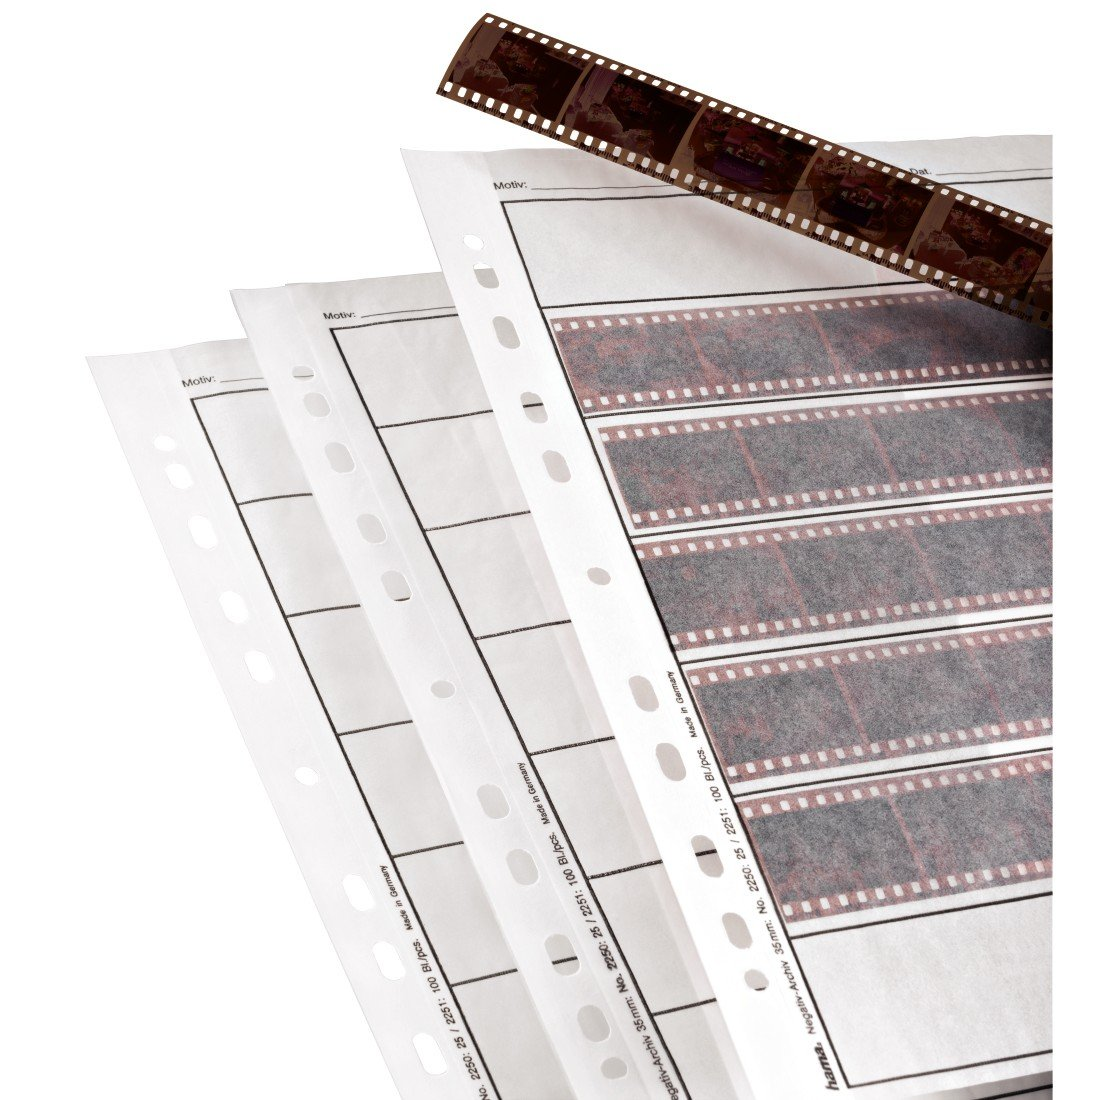 Hama Archival Negative Glassine Sheets Sleeves for 35mm Films - 100pcs by Hama